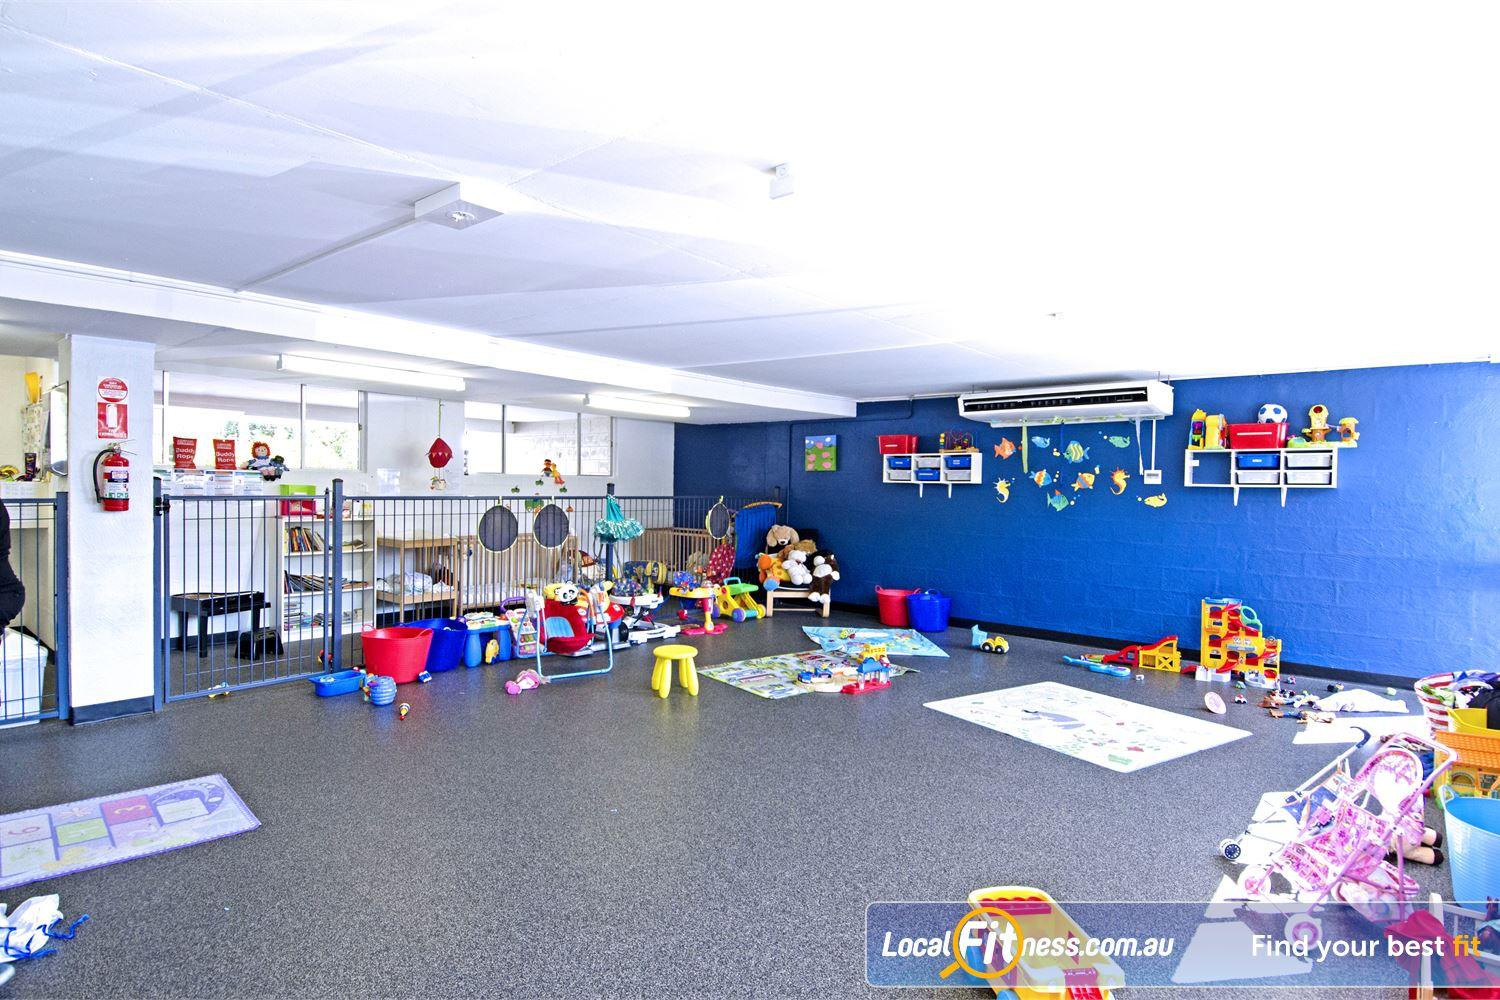 Goodlife Health Clubs Graceville Goodlife Graceville provides on-site child minding services.